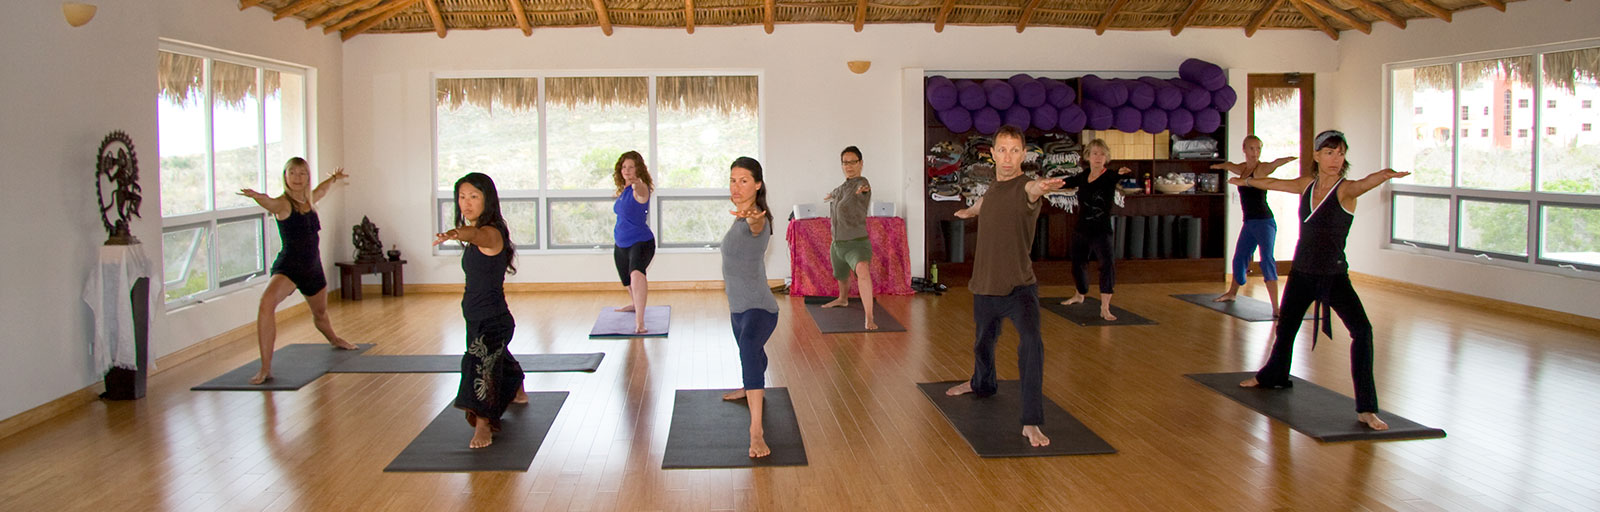 Mexico Yoga Retreats: Warrior Pose in Yoga Class